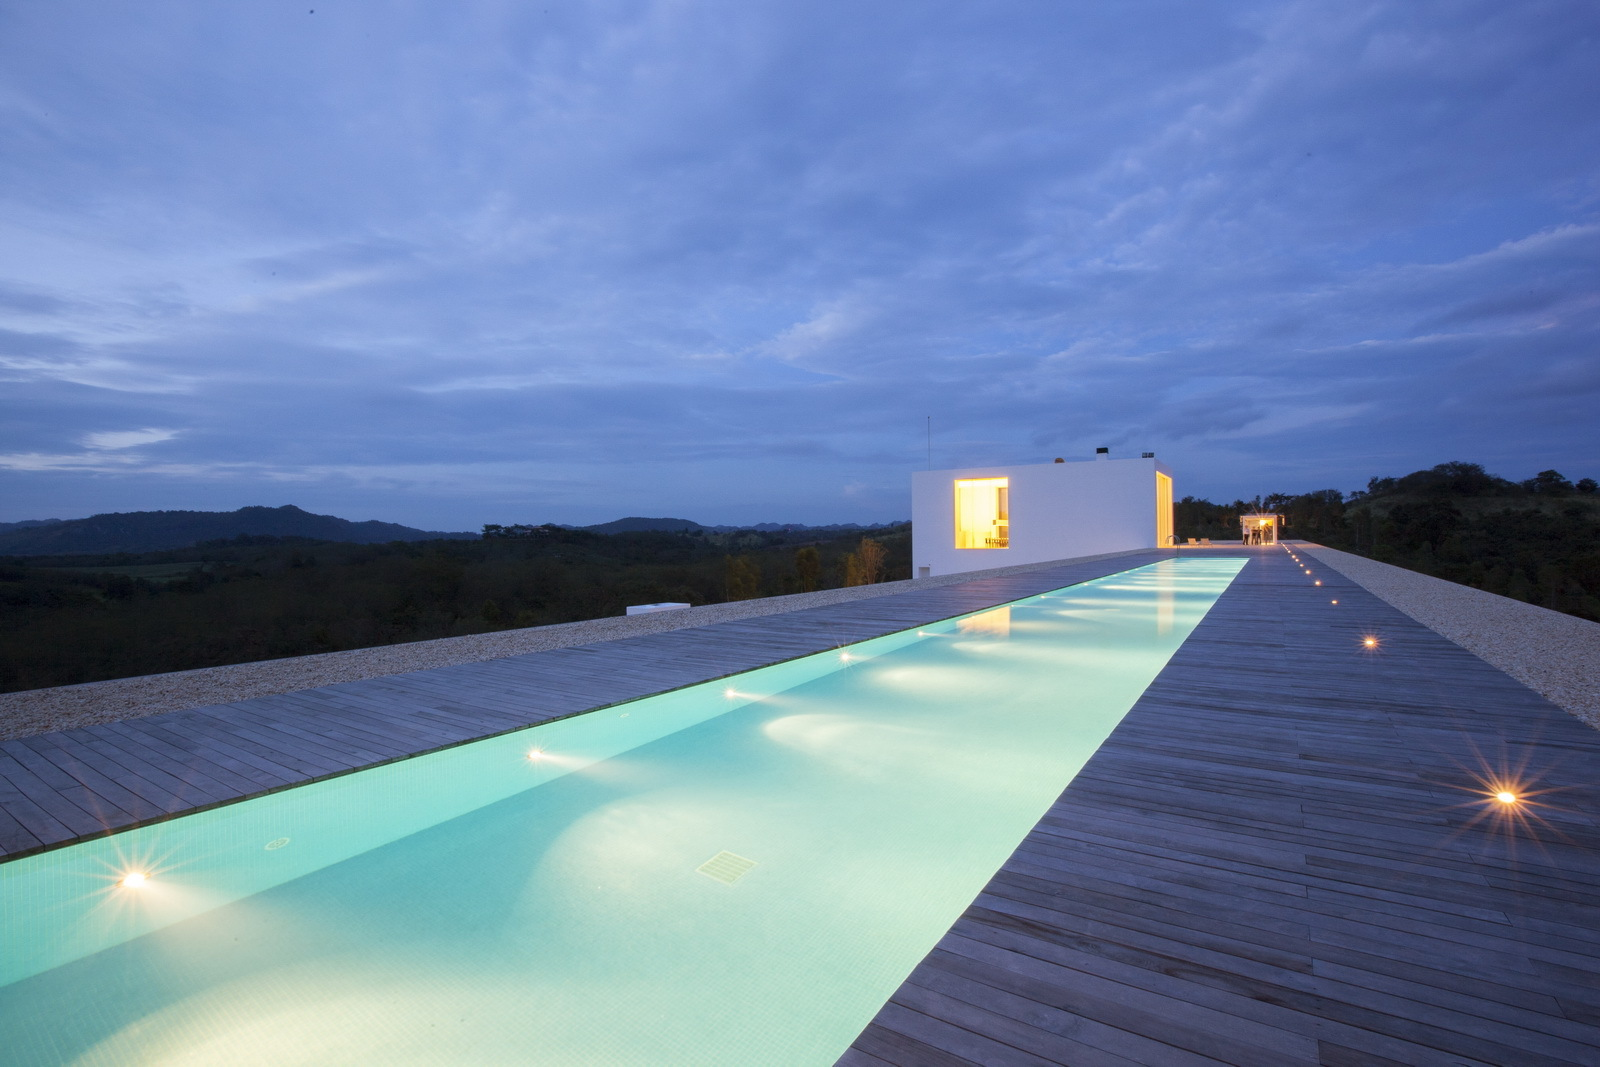 World s longest house 150 meter showme design for Outdoor swimming pool